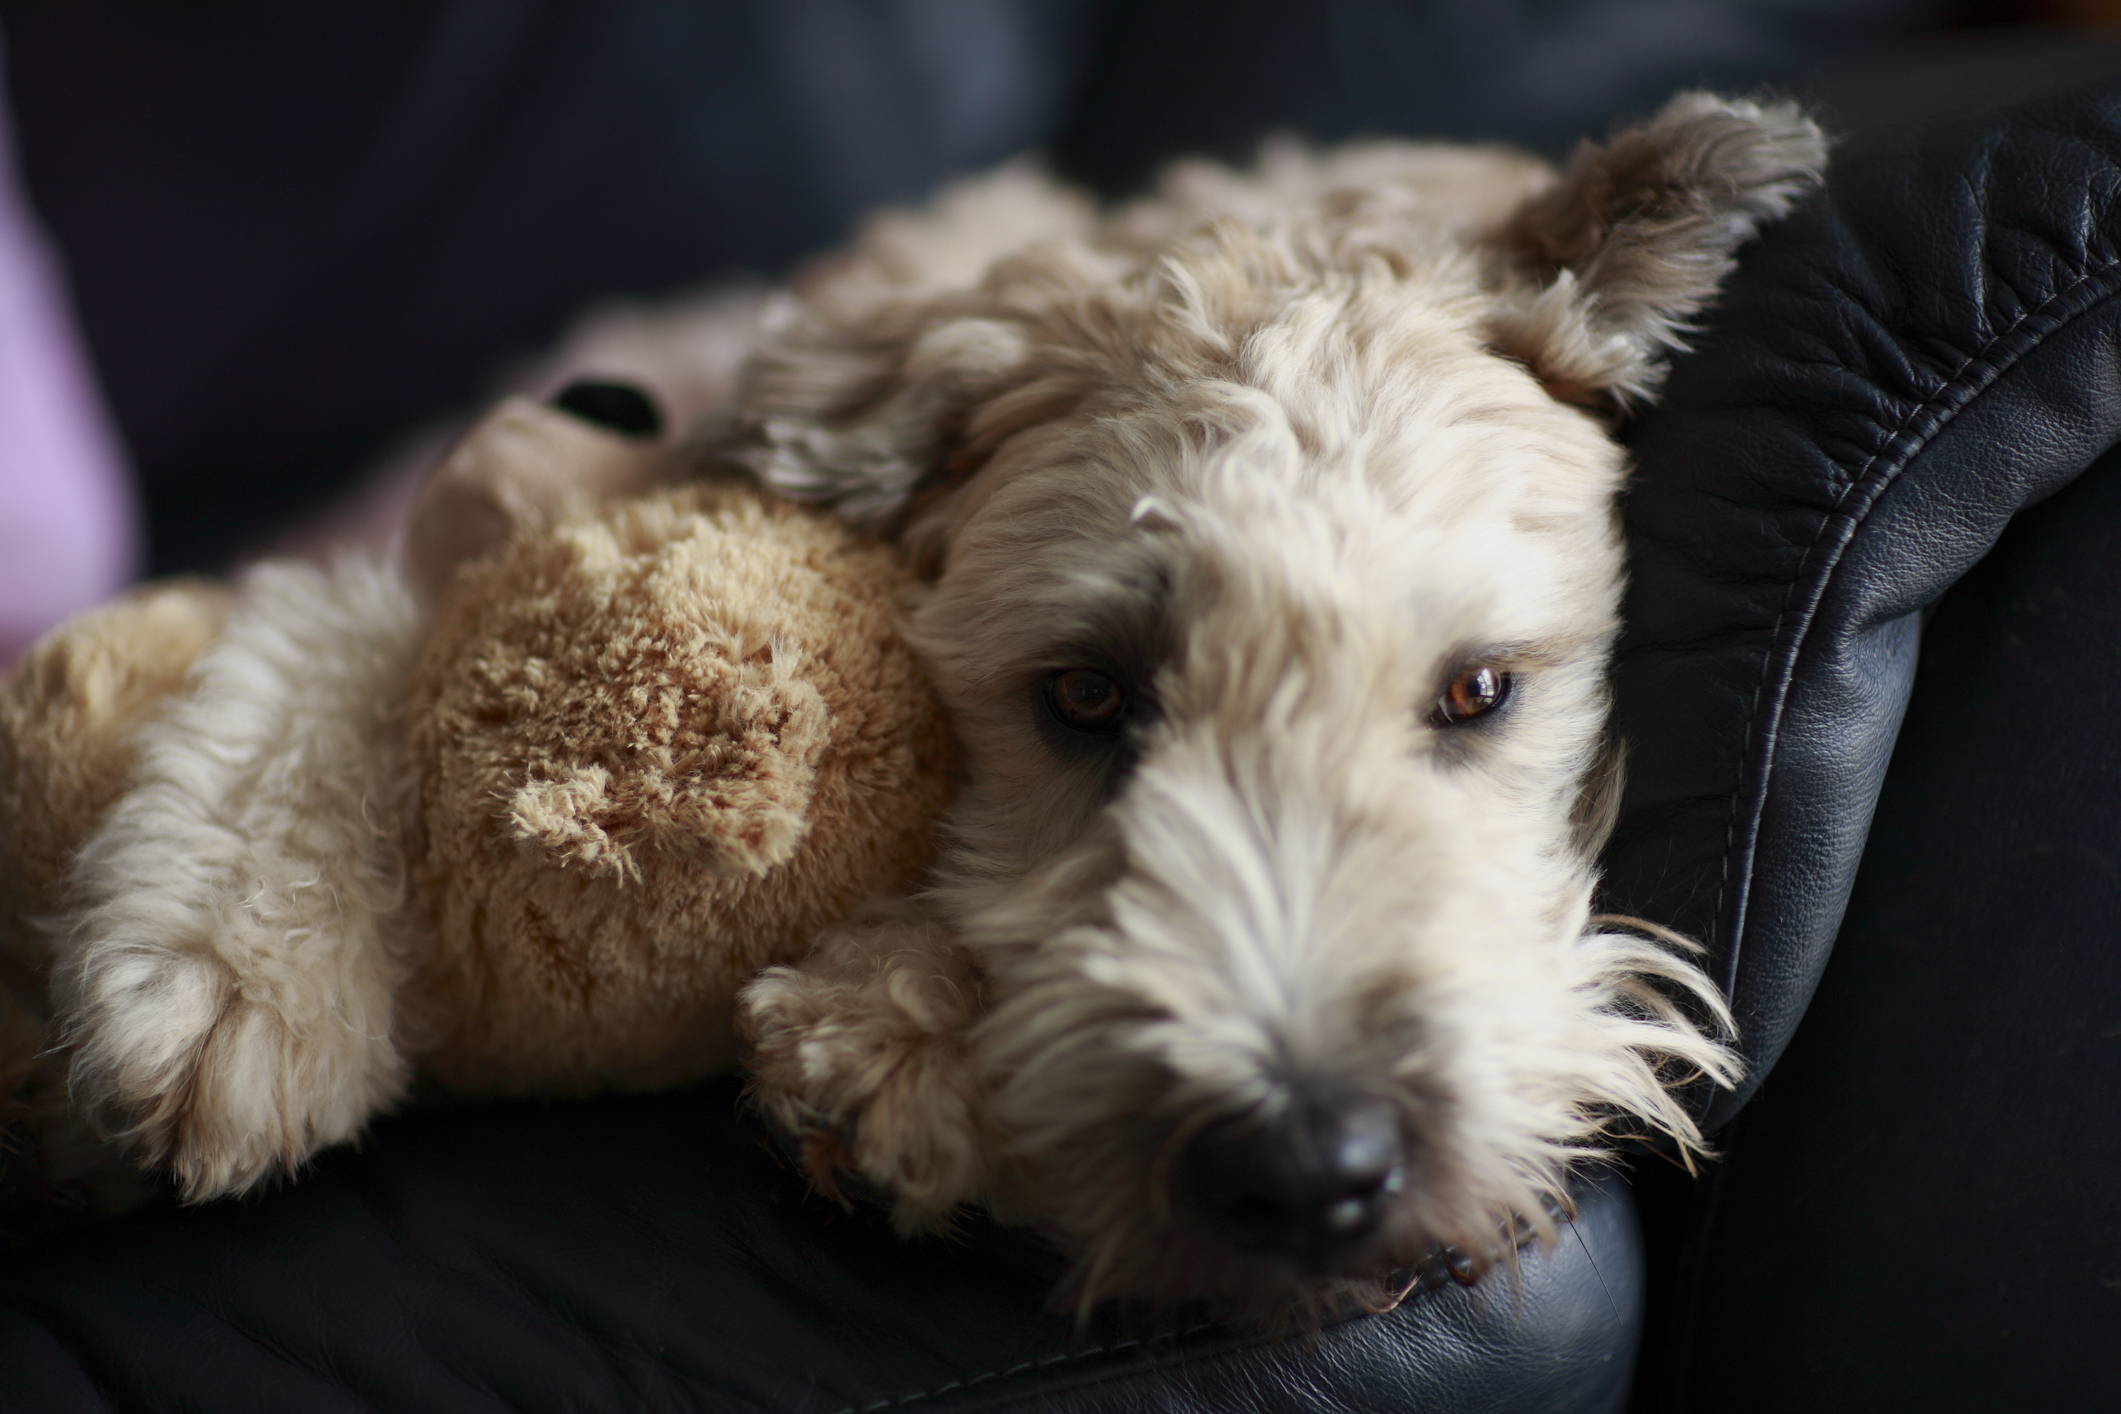 Finding Wheaten Terrier Rescues In The